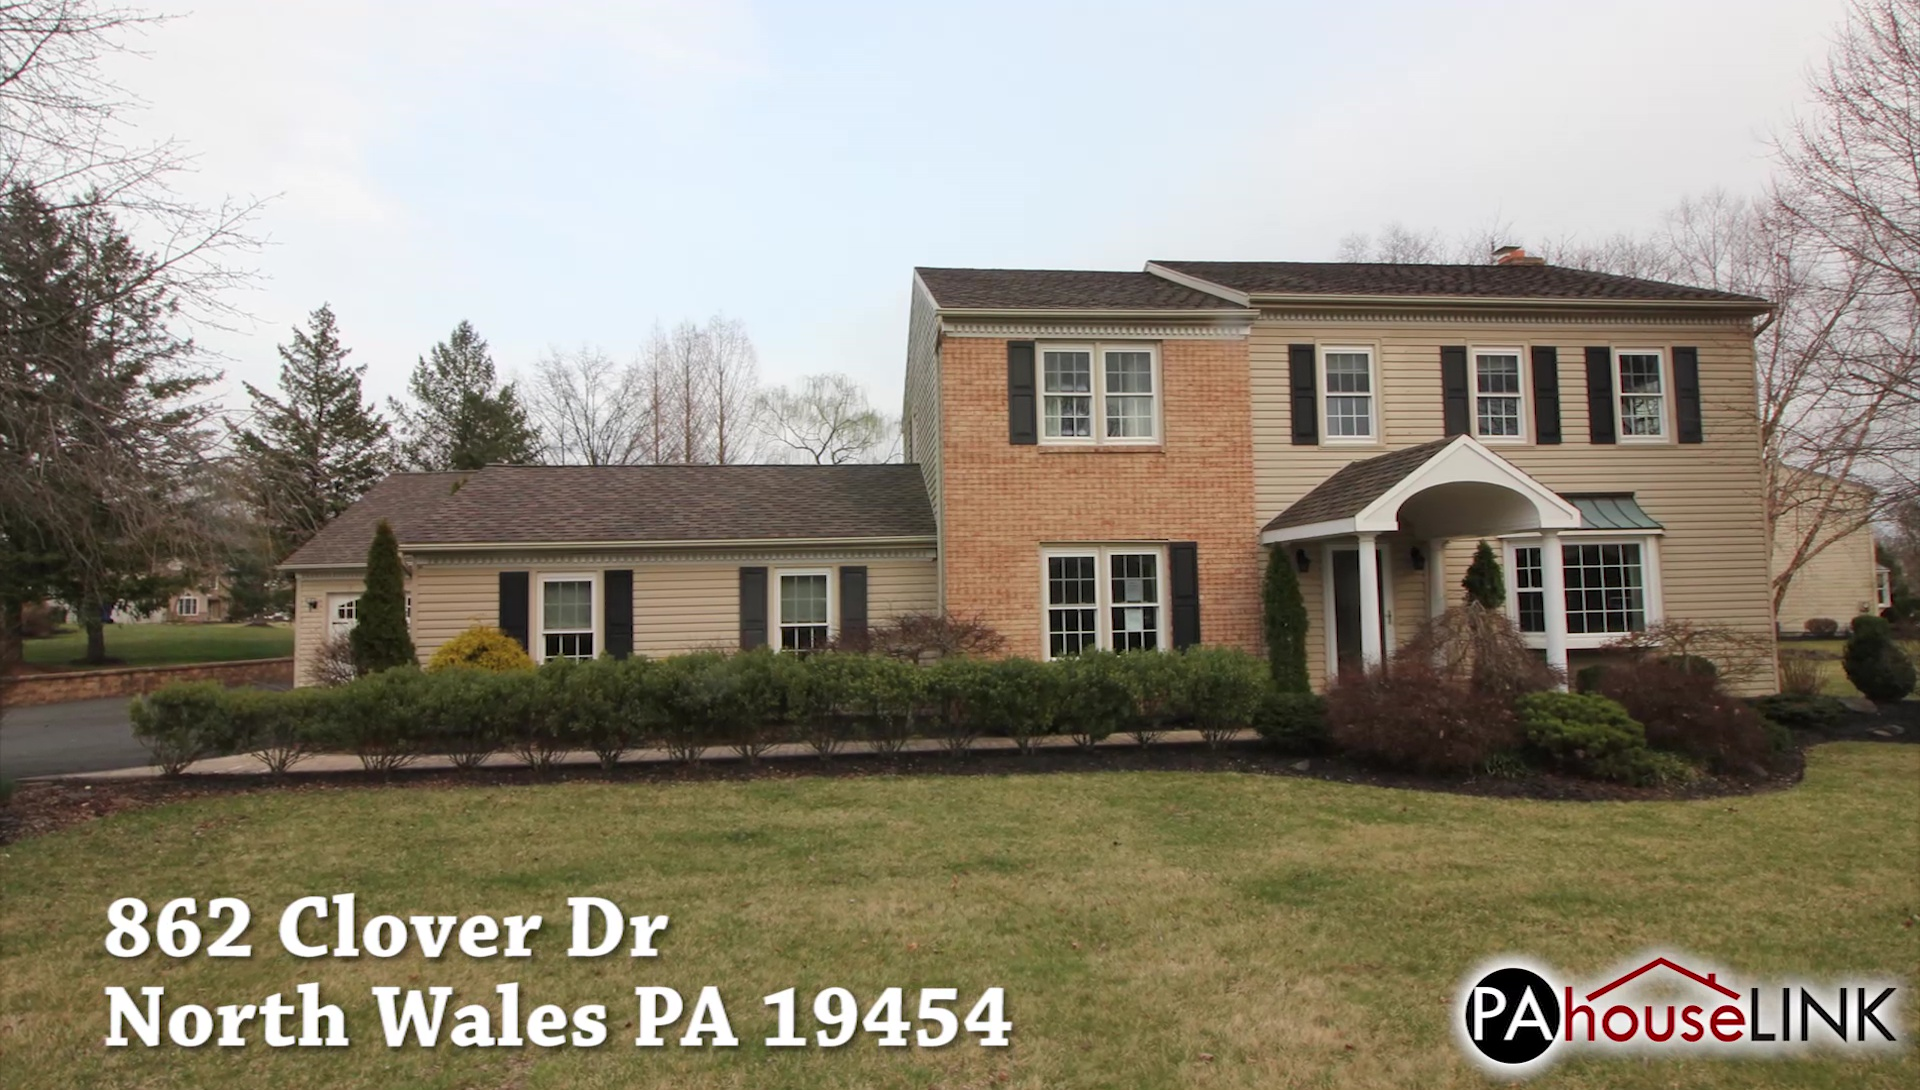 862 Clover Dr North Wales PA 19454 | Coming Soon Foreclosure Properties North Wales PA 19454